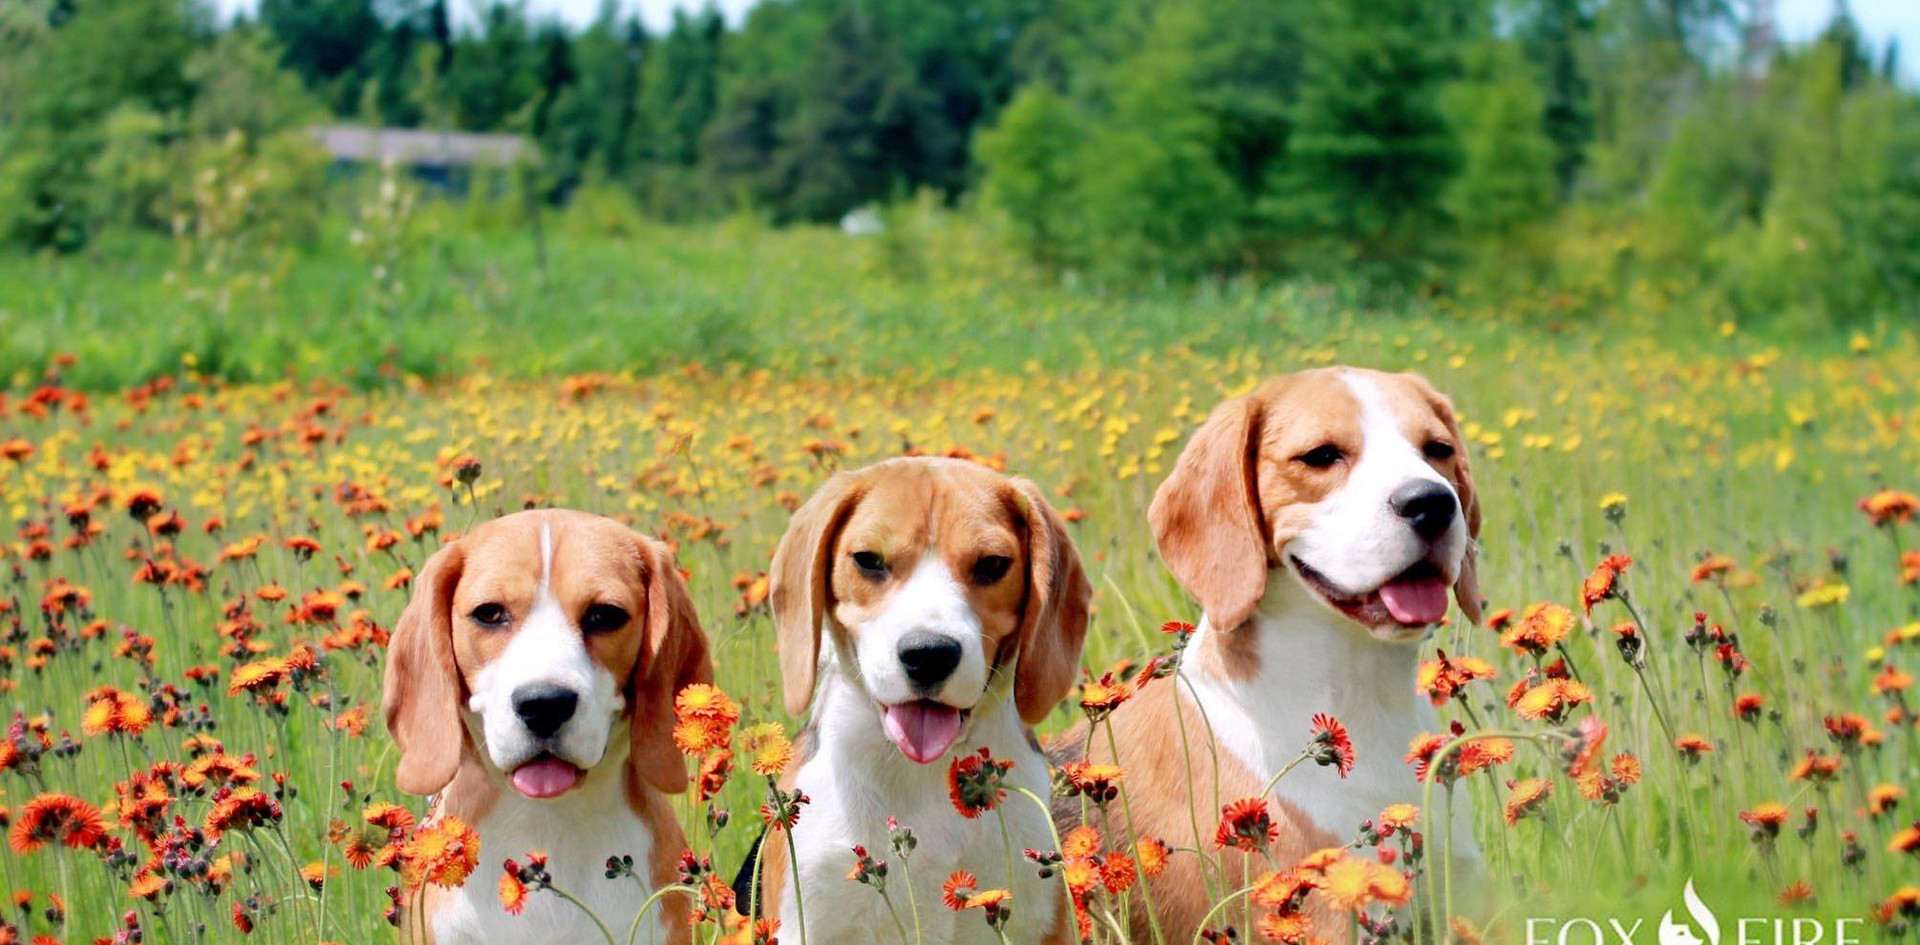 Three Beagles in a field